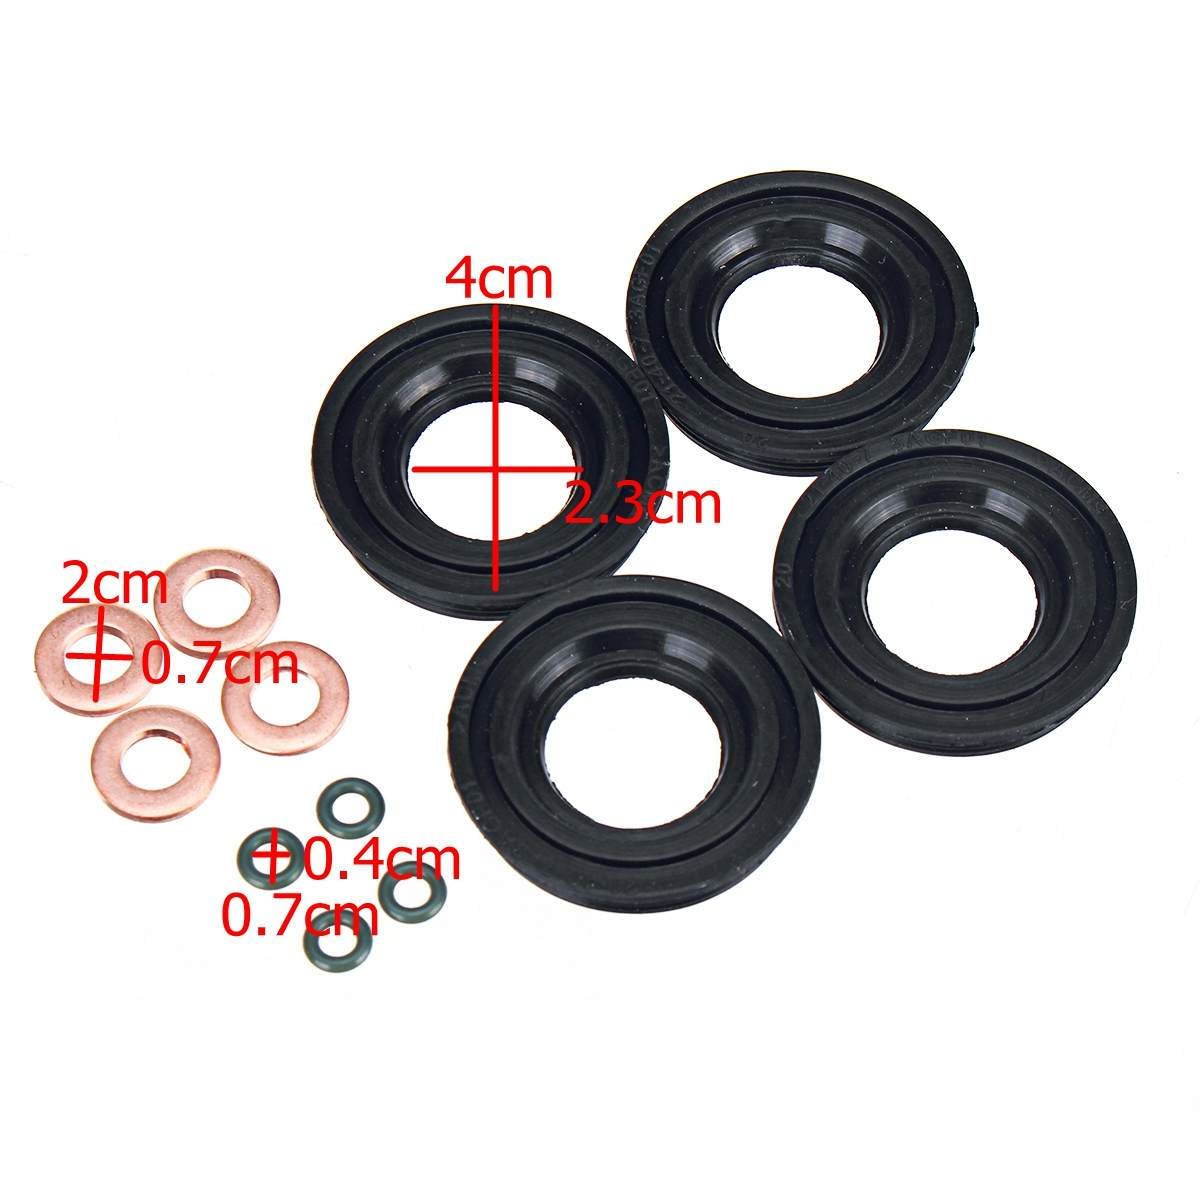 Car FUEL INJECTOR SEAL + WASHER + O-RING FOR FORD TRANSIT MK7 2.2 2.4 3.2 TDCI Accessories 1372494,1378433,1495919,1378432